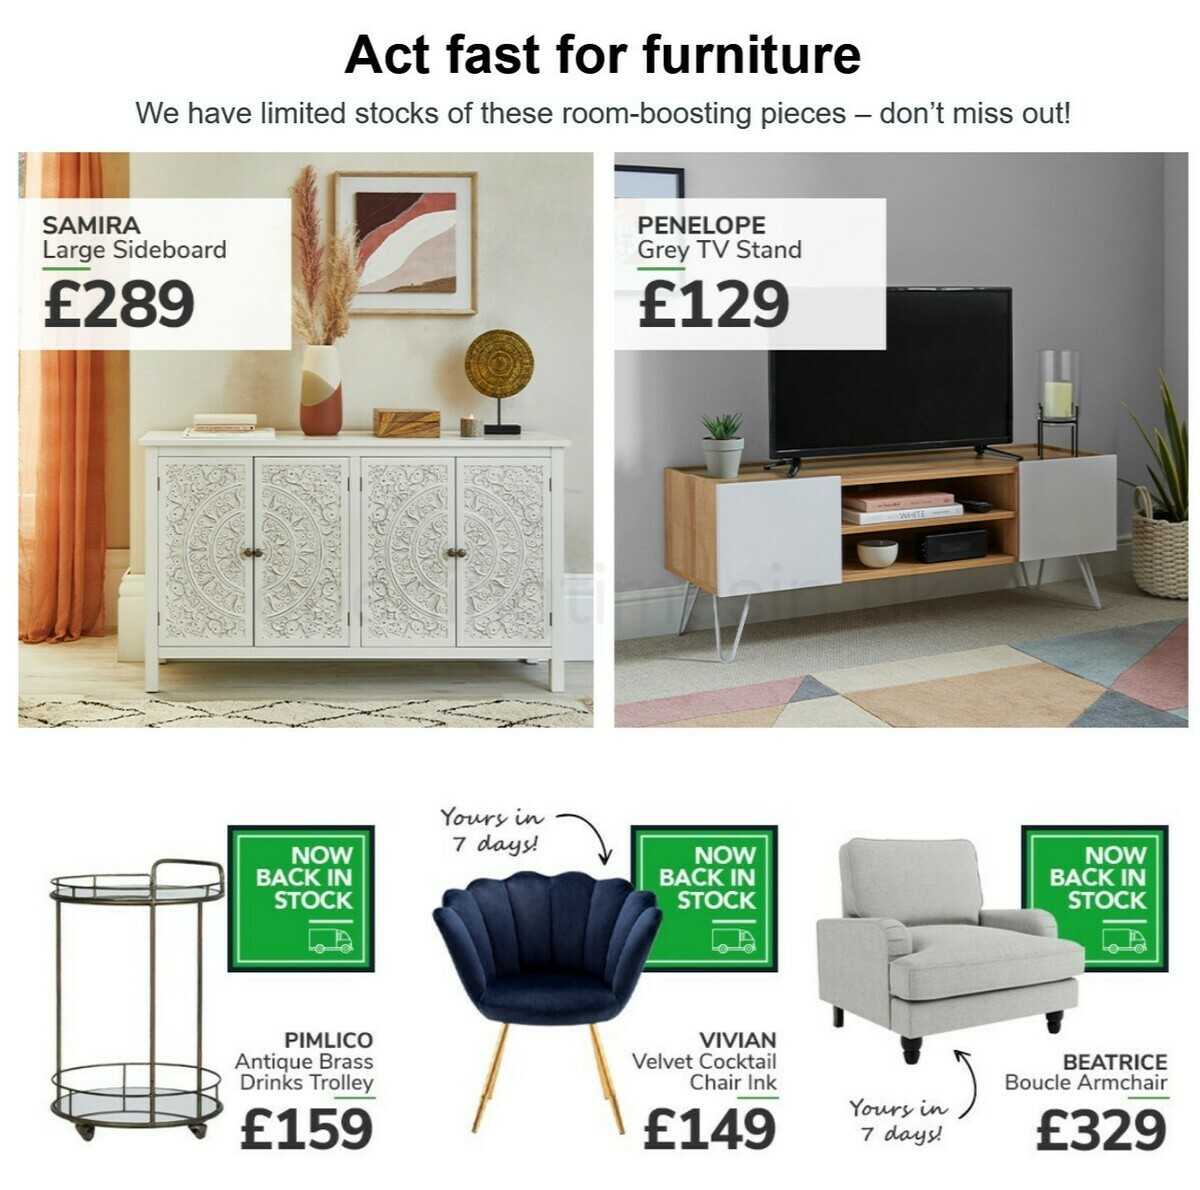 Dunelm Offers from April 25